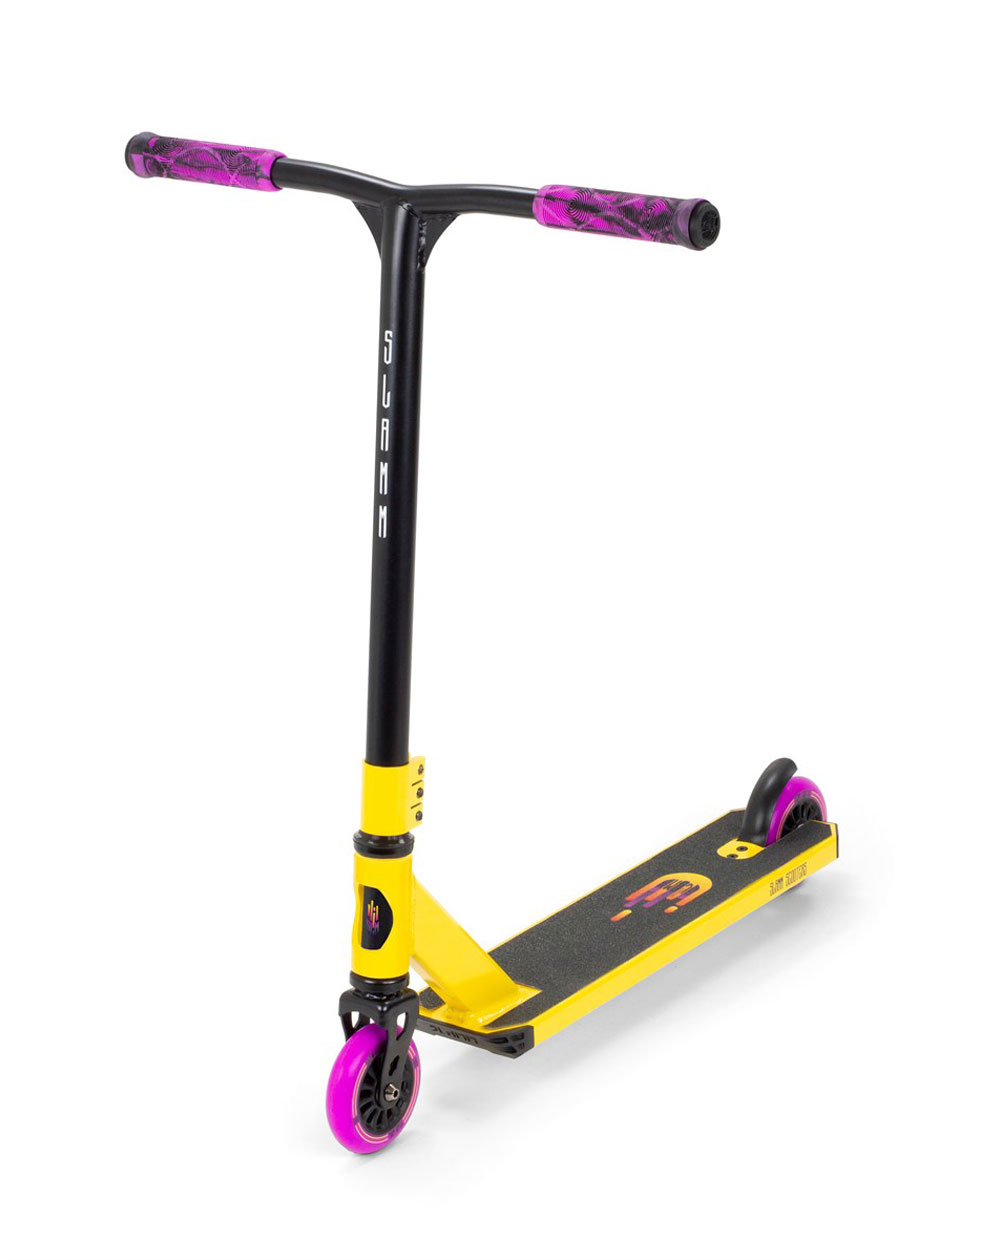 Slamm Scooters Tantrum V9 Stunt Scooter Yellow